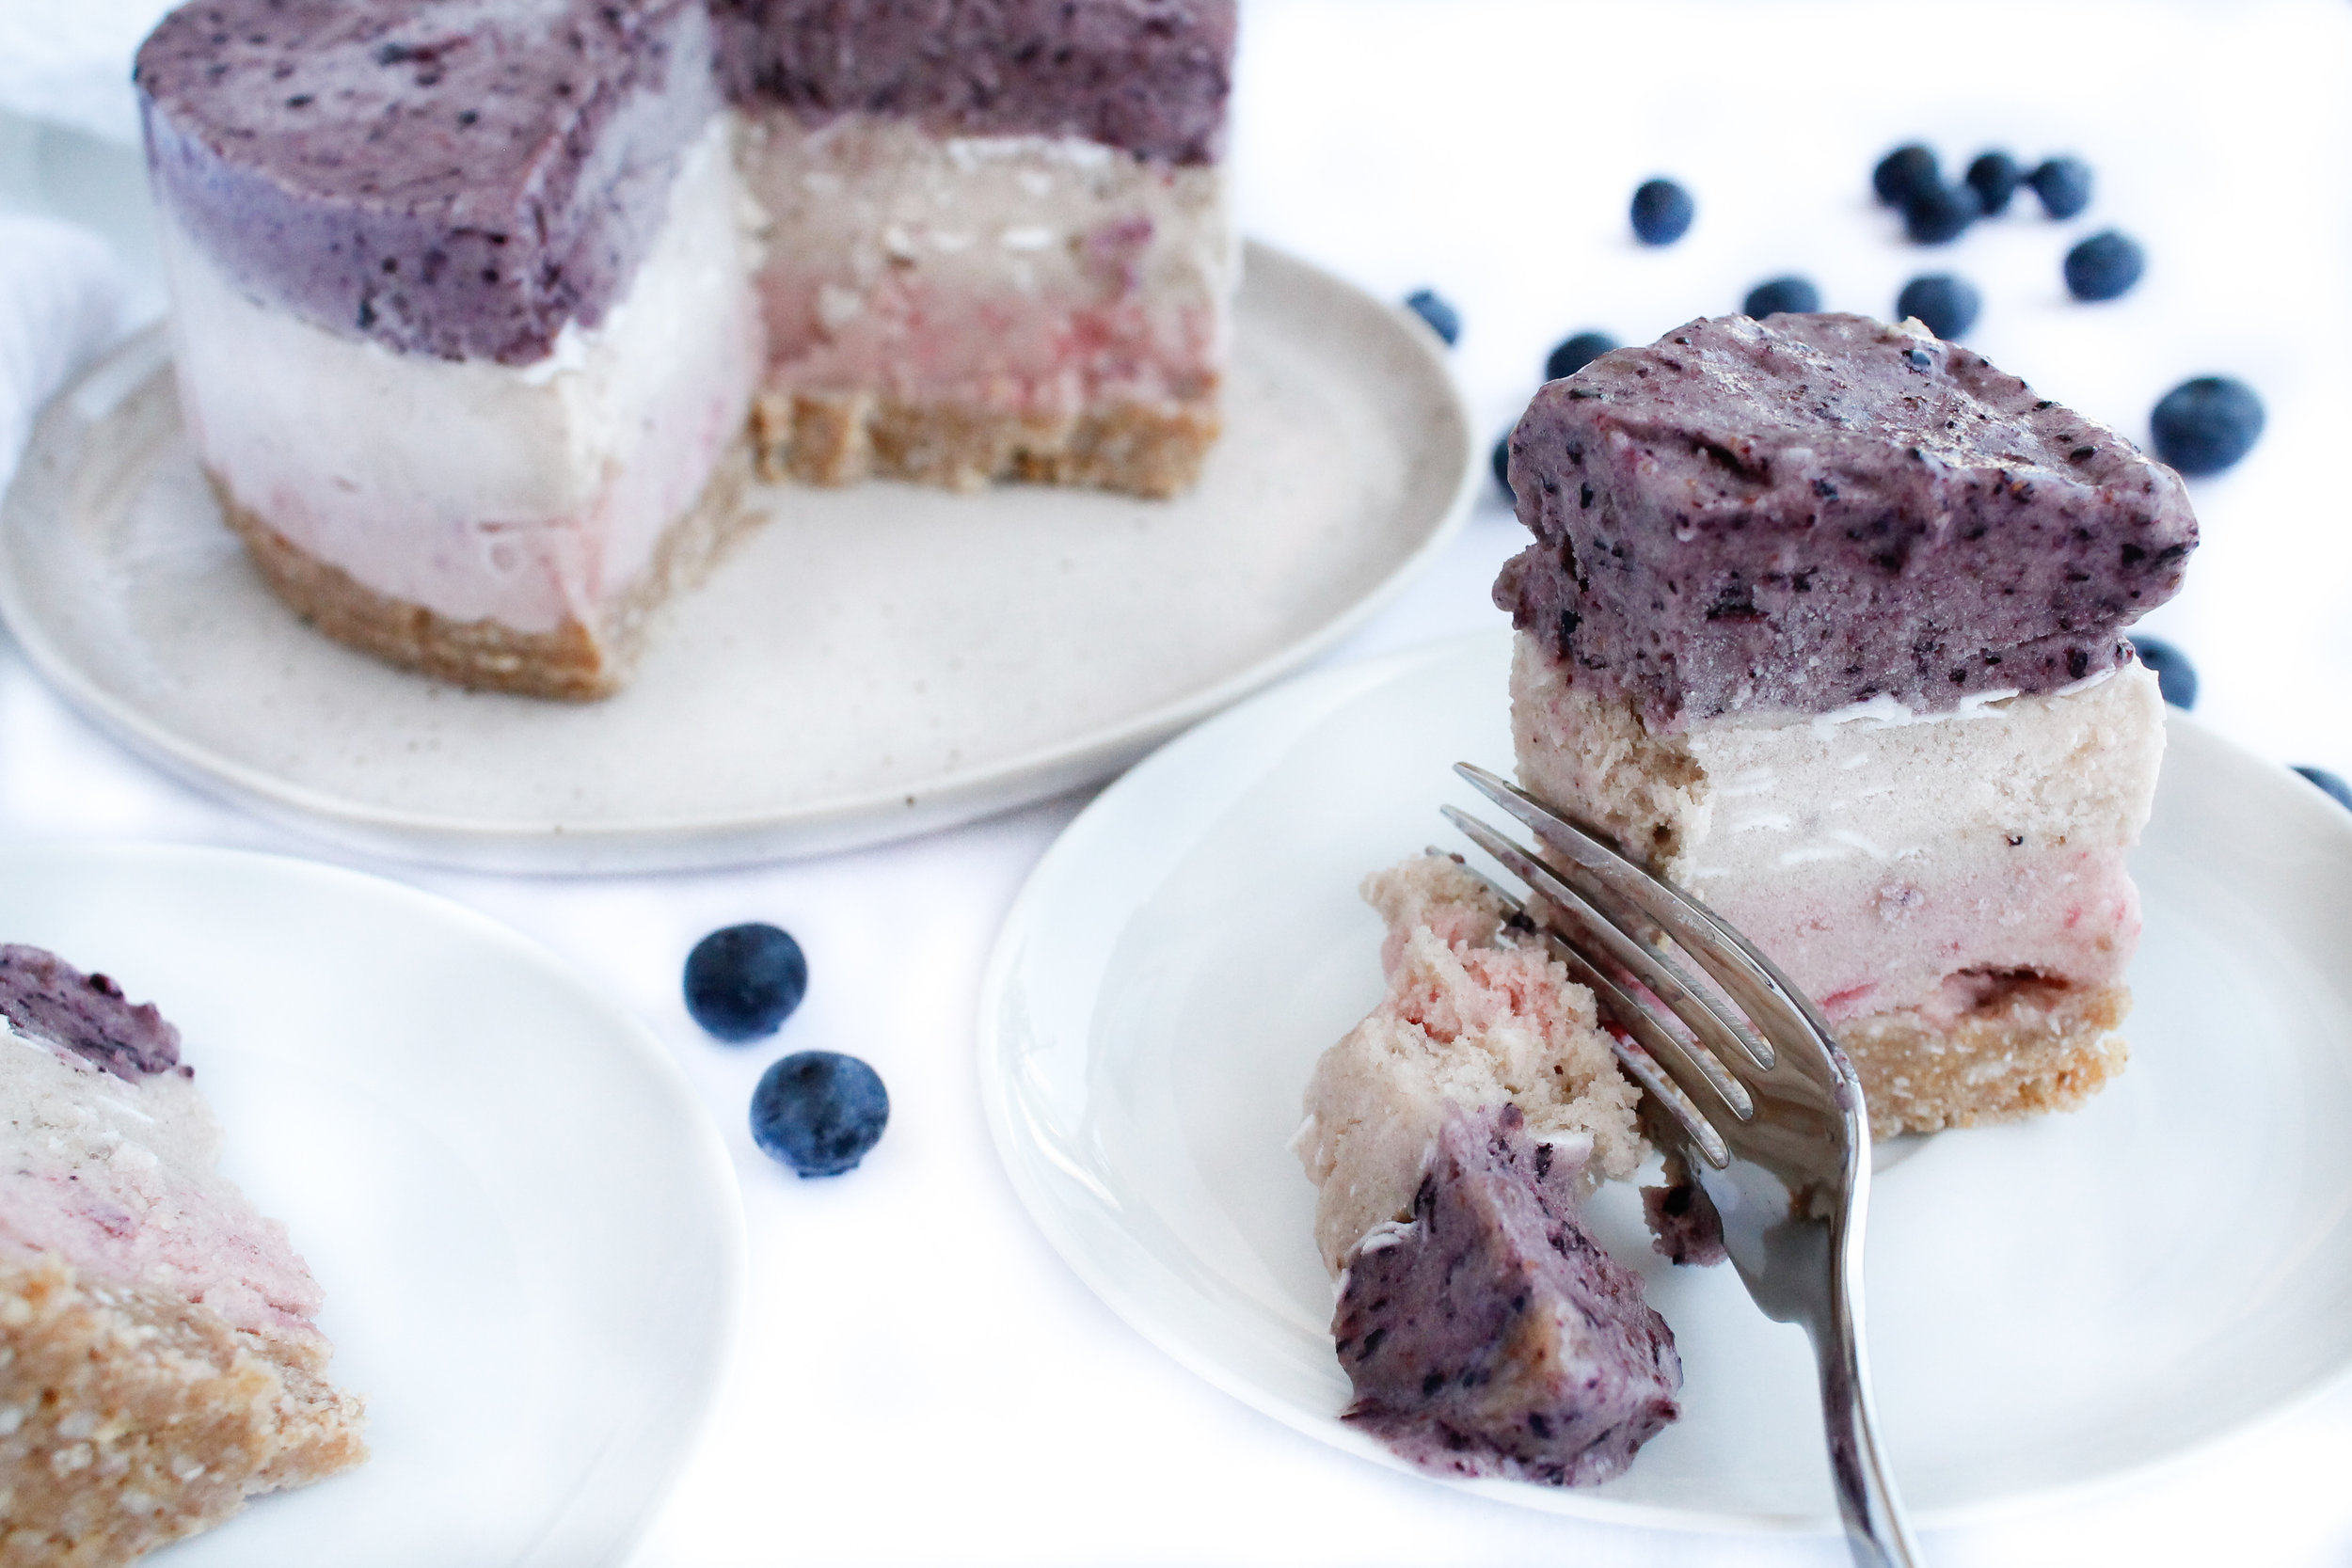 This triple layer vegan banana ice cream cake is a perfect healthy dessert to satisfy your sweet tooth! It's paleo, gluten free, vegan, refined sugar free and Specific Carbohydrate Diet friendly. This sugar free dessert is sure to be a crowd pleaser. It's a perfect allergy friendly recipe and kid friendly recipe too! Click through to try the recipe for yourself! #paleo #vegan #specificcarbohydratediet #sugarfreedessert